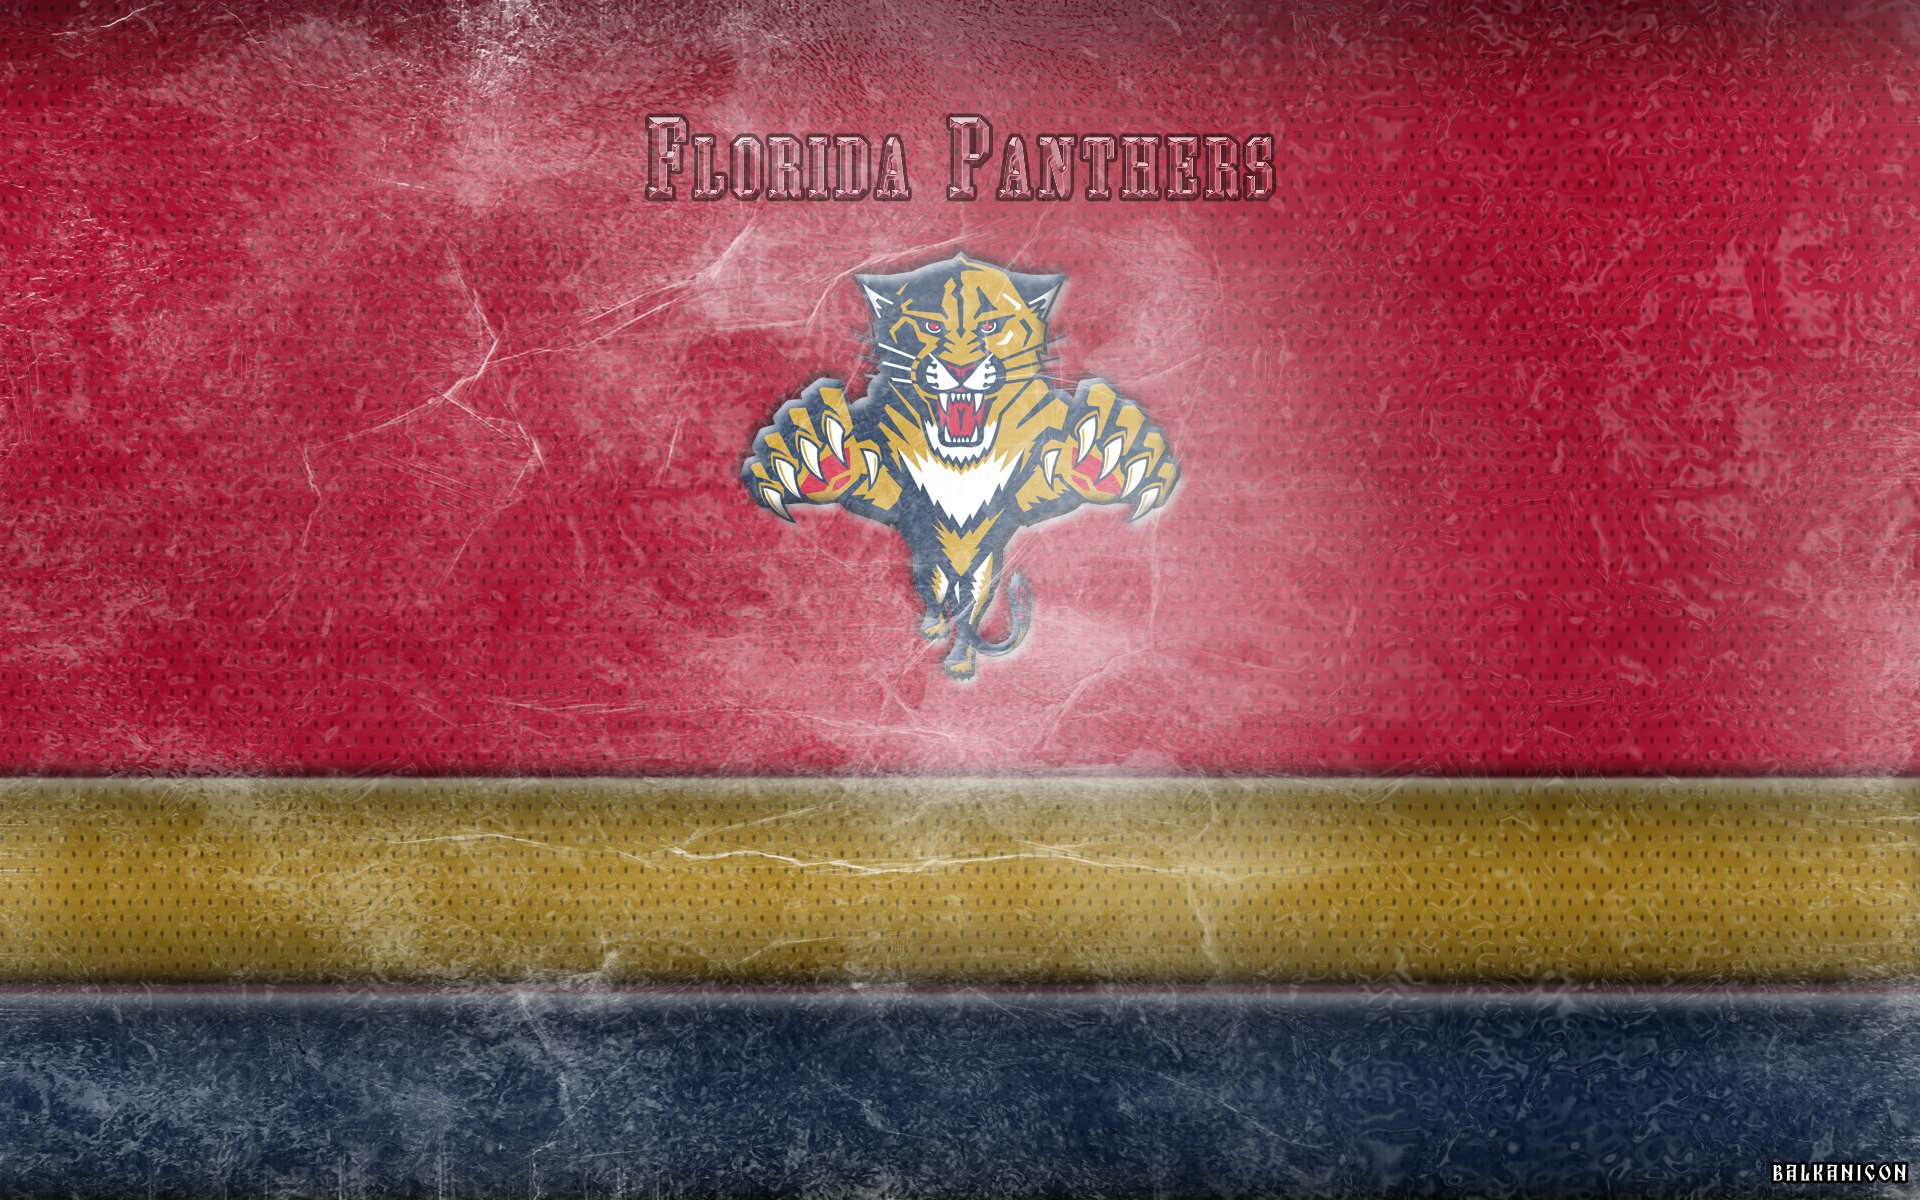 Florida Panthers wallpaper by Balkanicon 1920x1200